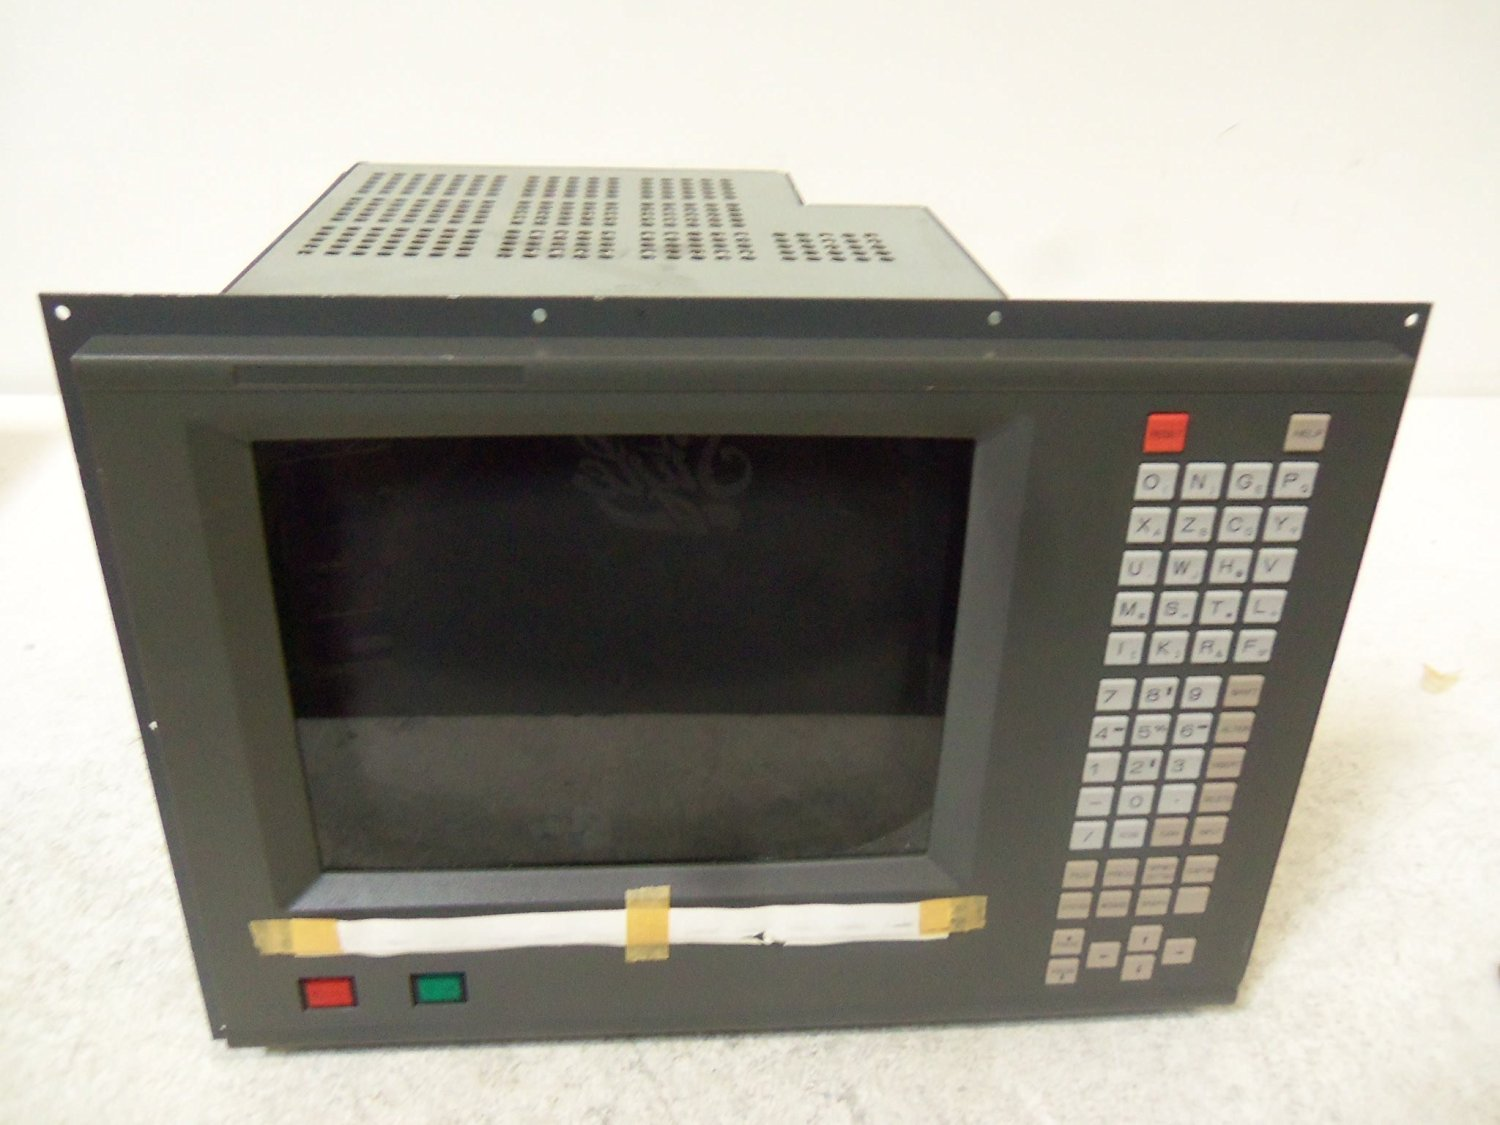 Get Quotations · FANUC A02B-0200-C071/TB CRT/MDI OPERATOR INTERFACENEW NO  BOX